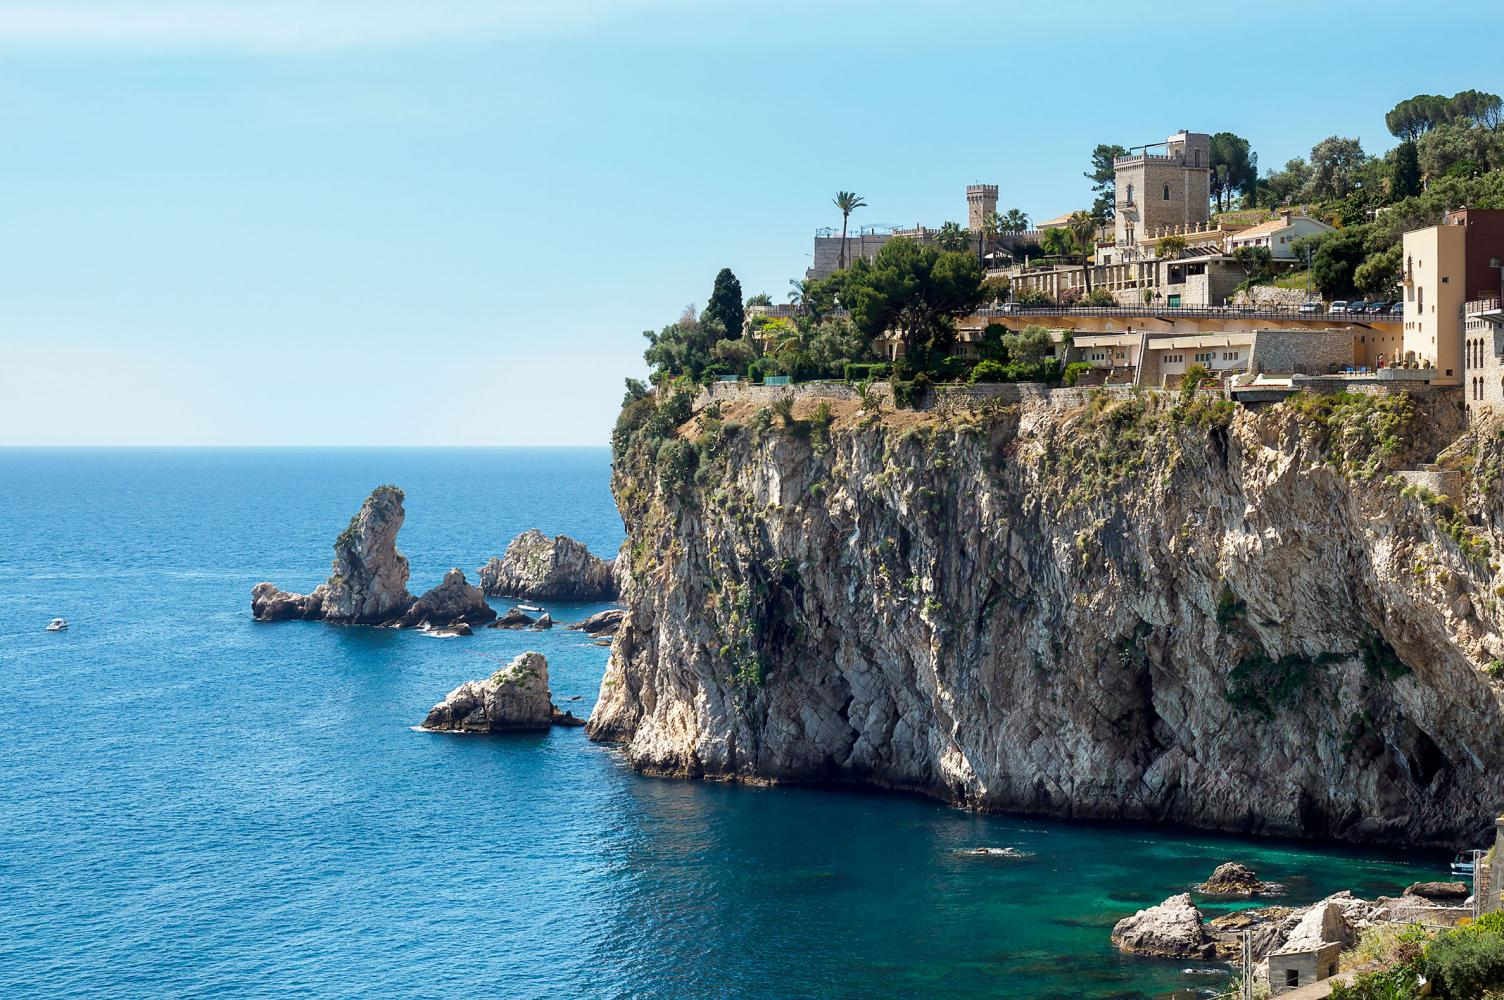 View from outside Luxury Villa Taormina Sicily